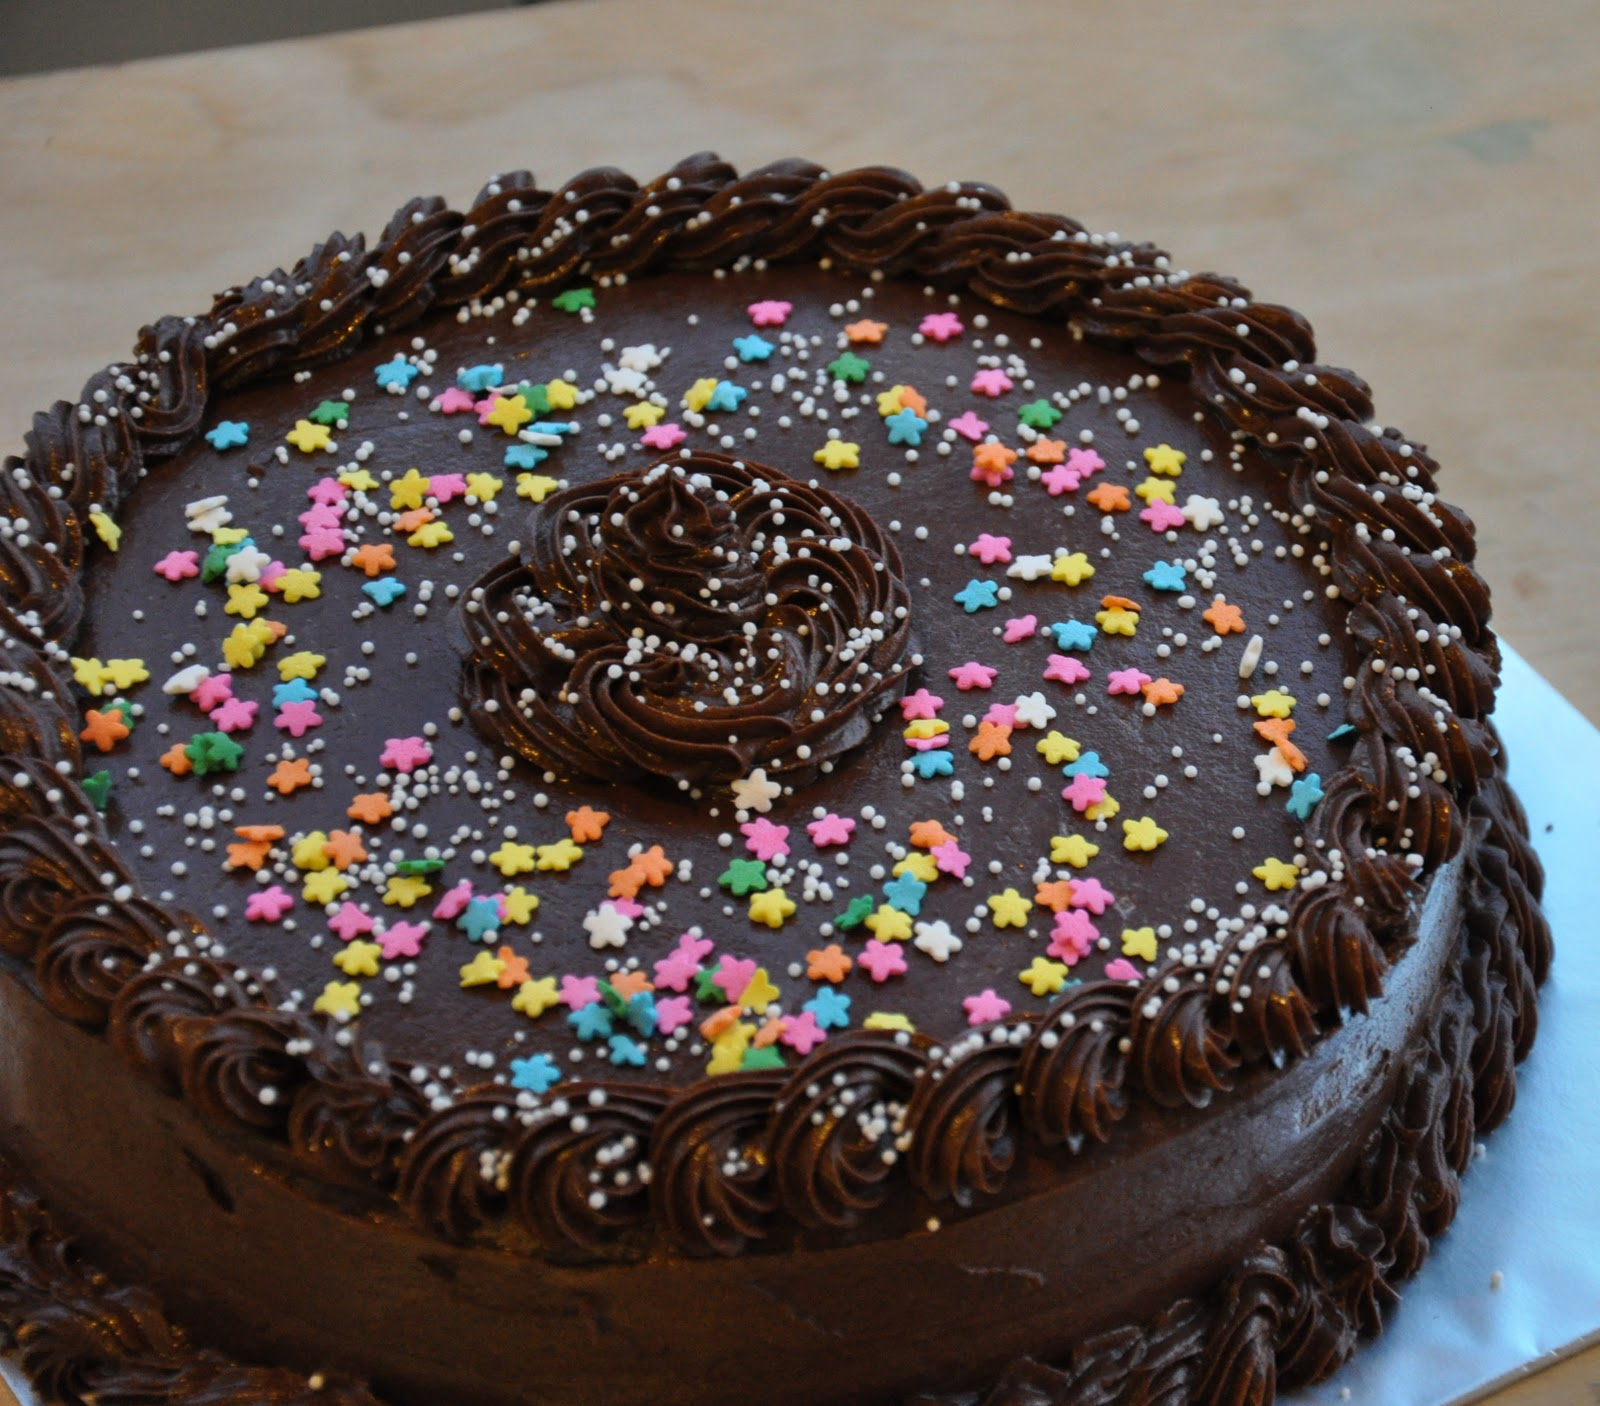 Eggless Chocolate Cake With Chocolate Frosting